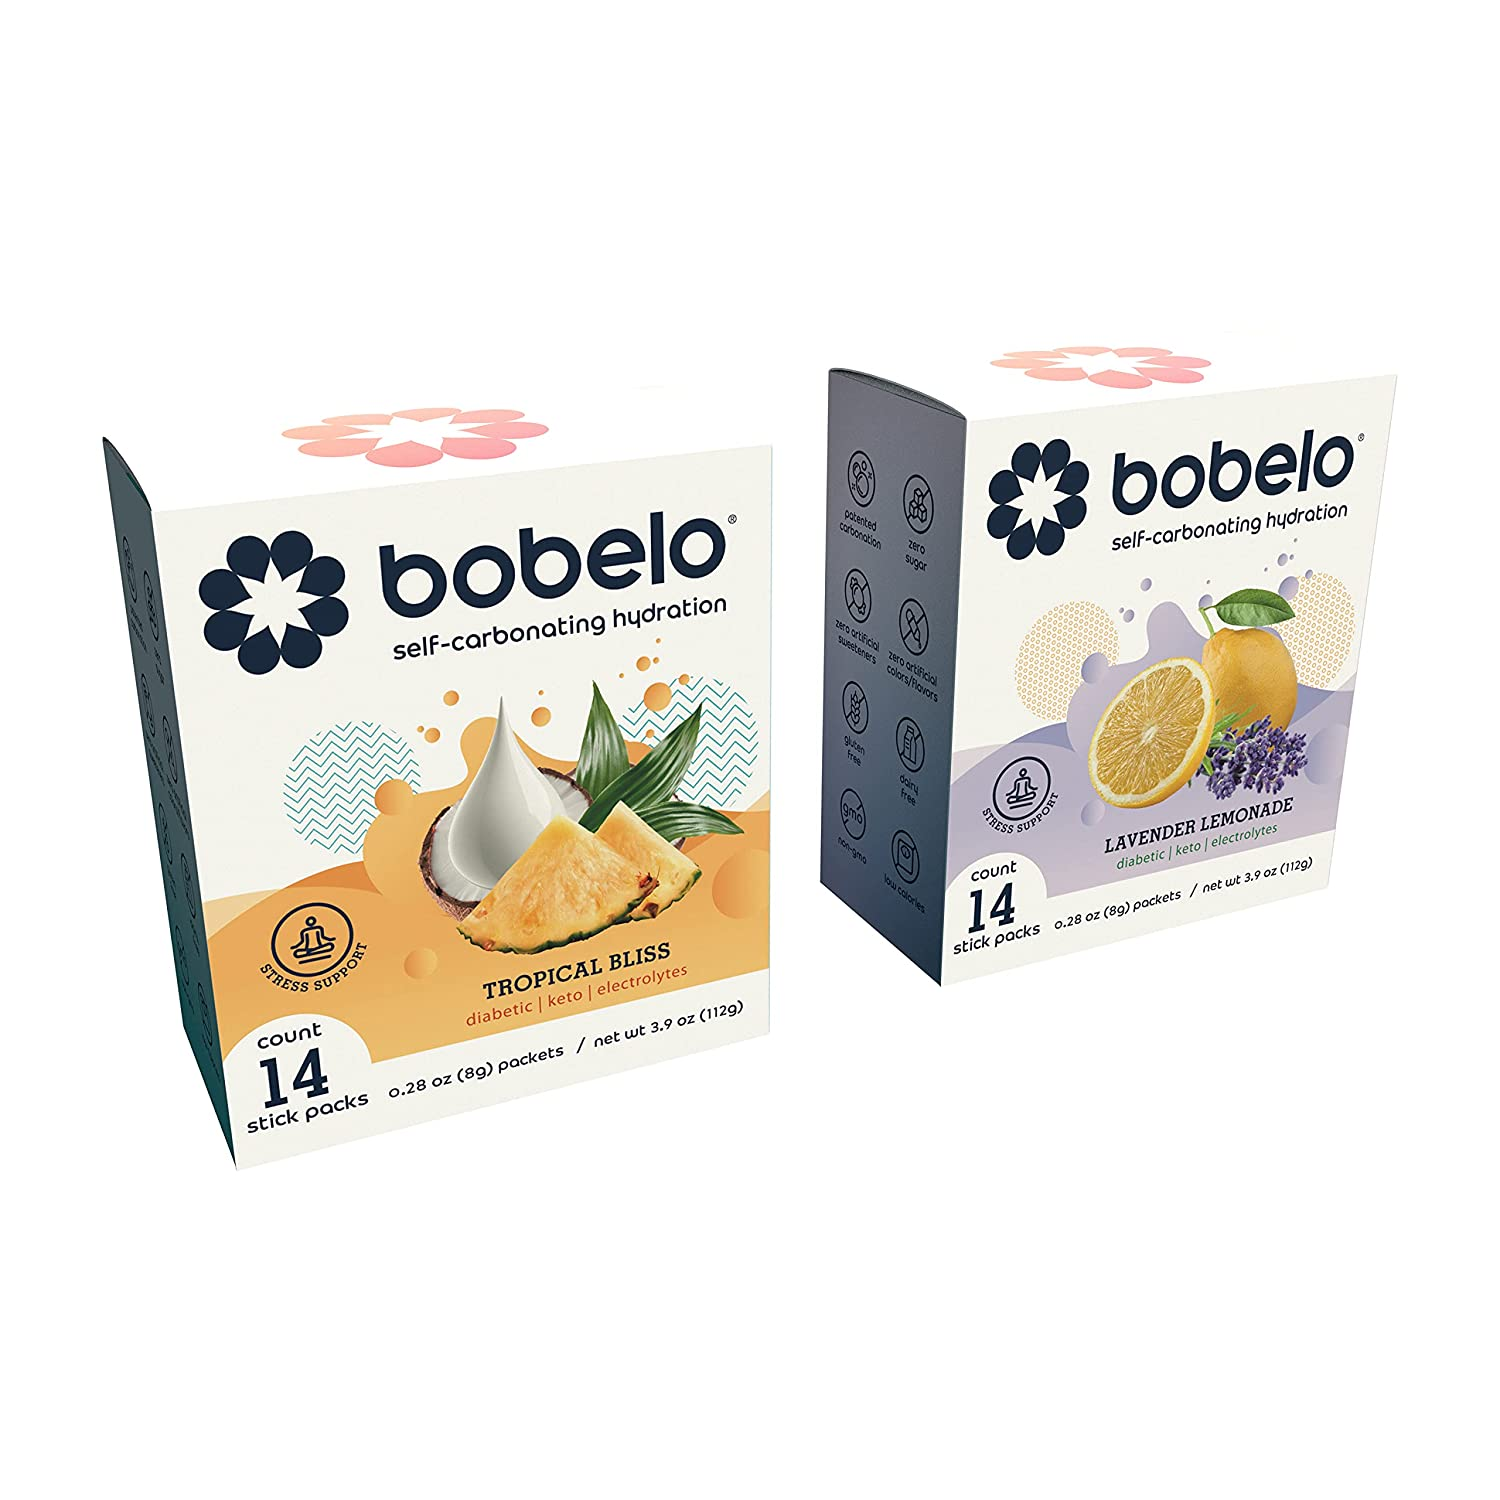 BOBELO SELF CARBONATING Hydration Packets Flavors - Great Dri 4 Industry No. 1 Fees free!!